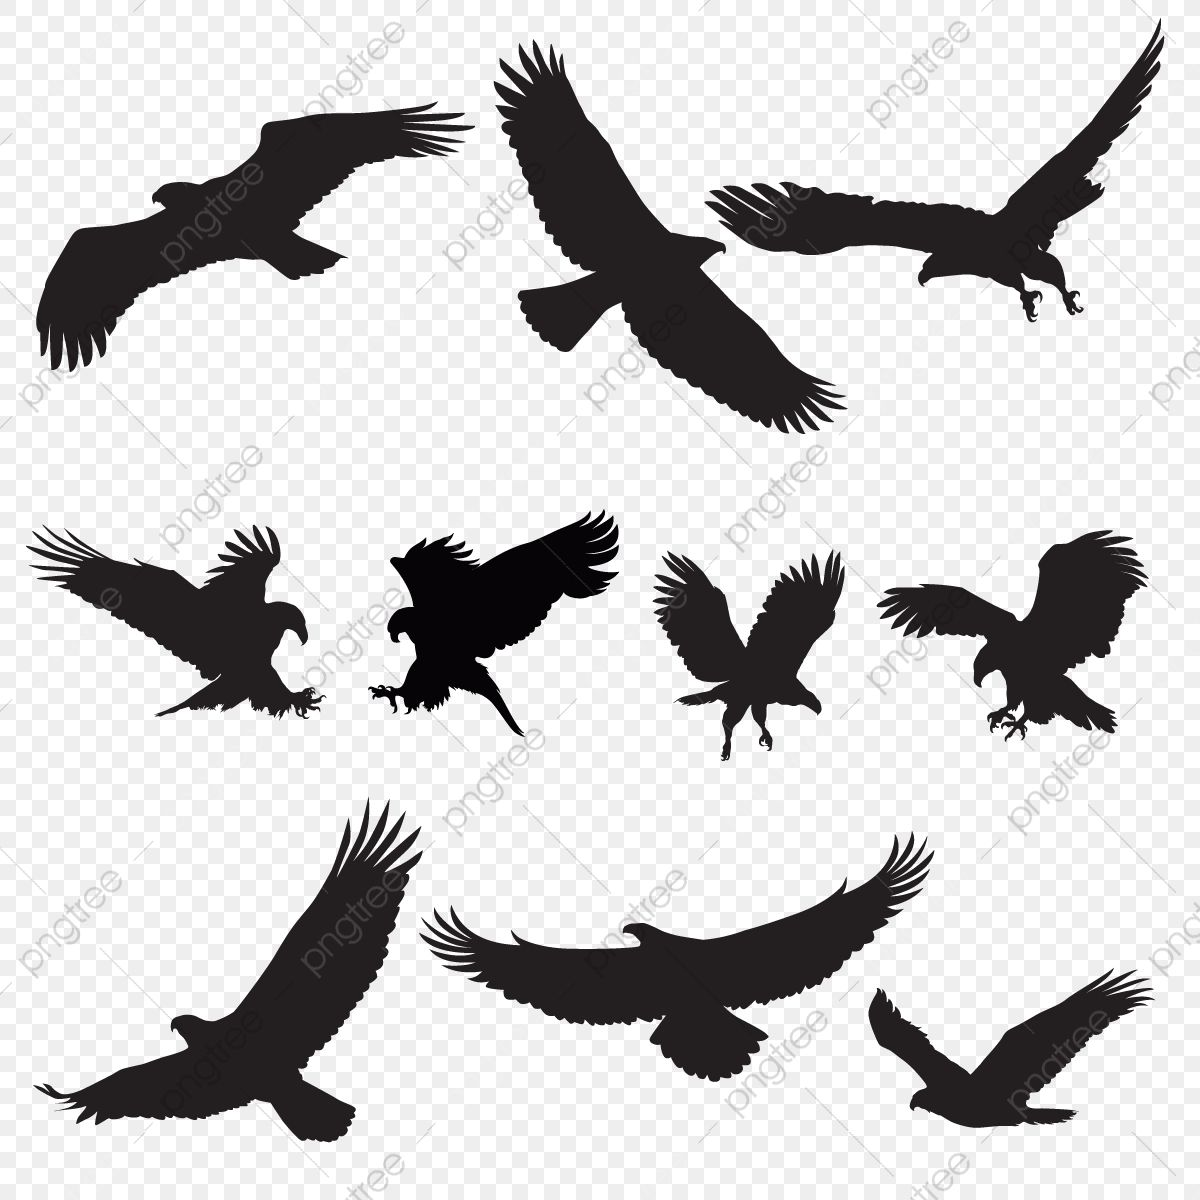 Eagle Hawk Bird Png Image With Transparent Background Motorcycle Illustration Eagle Pictures Horse Silhouette